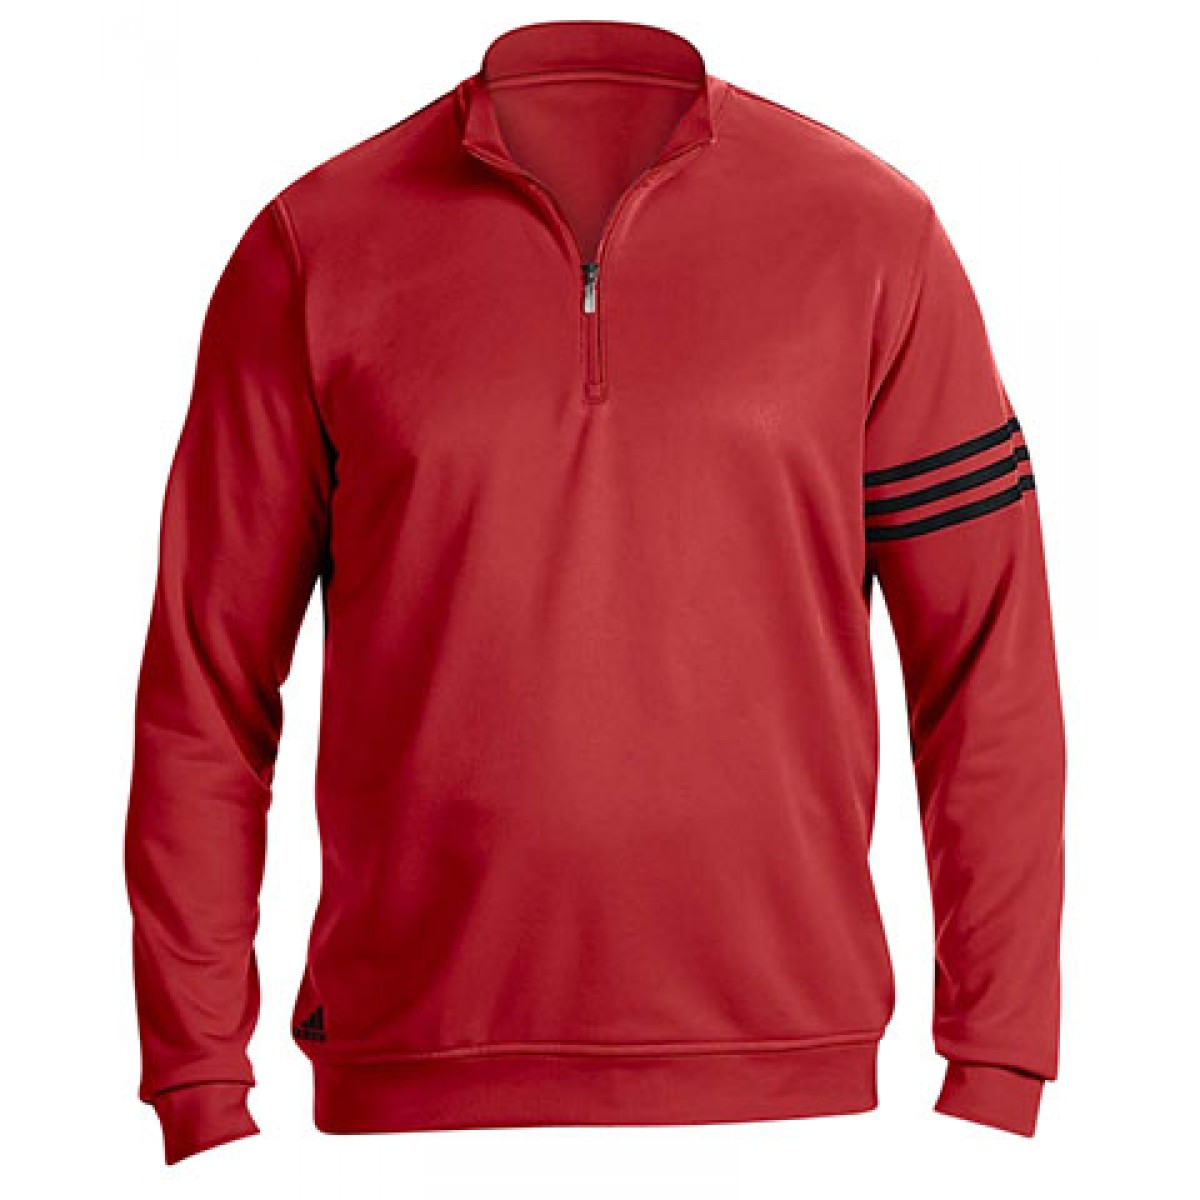 Adidas Men's 3-Stripes Pullover-Red-M